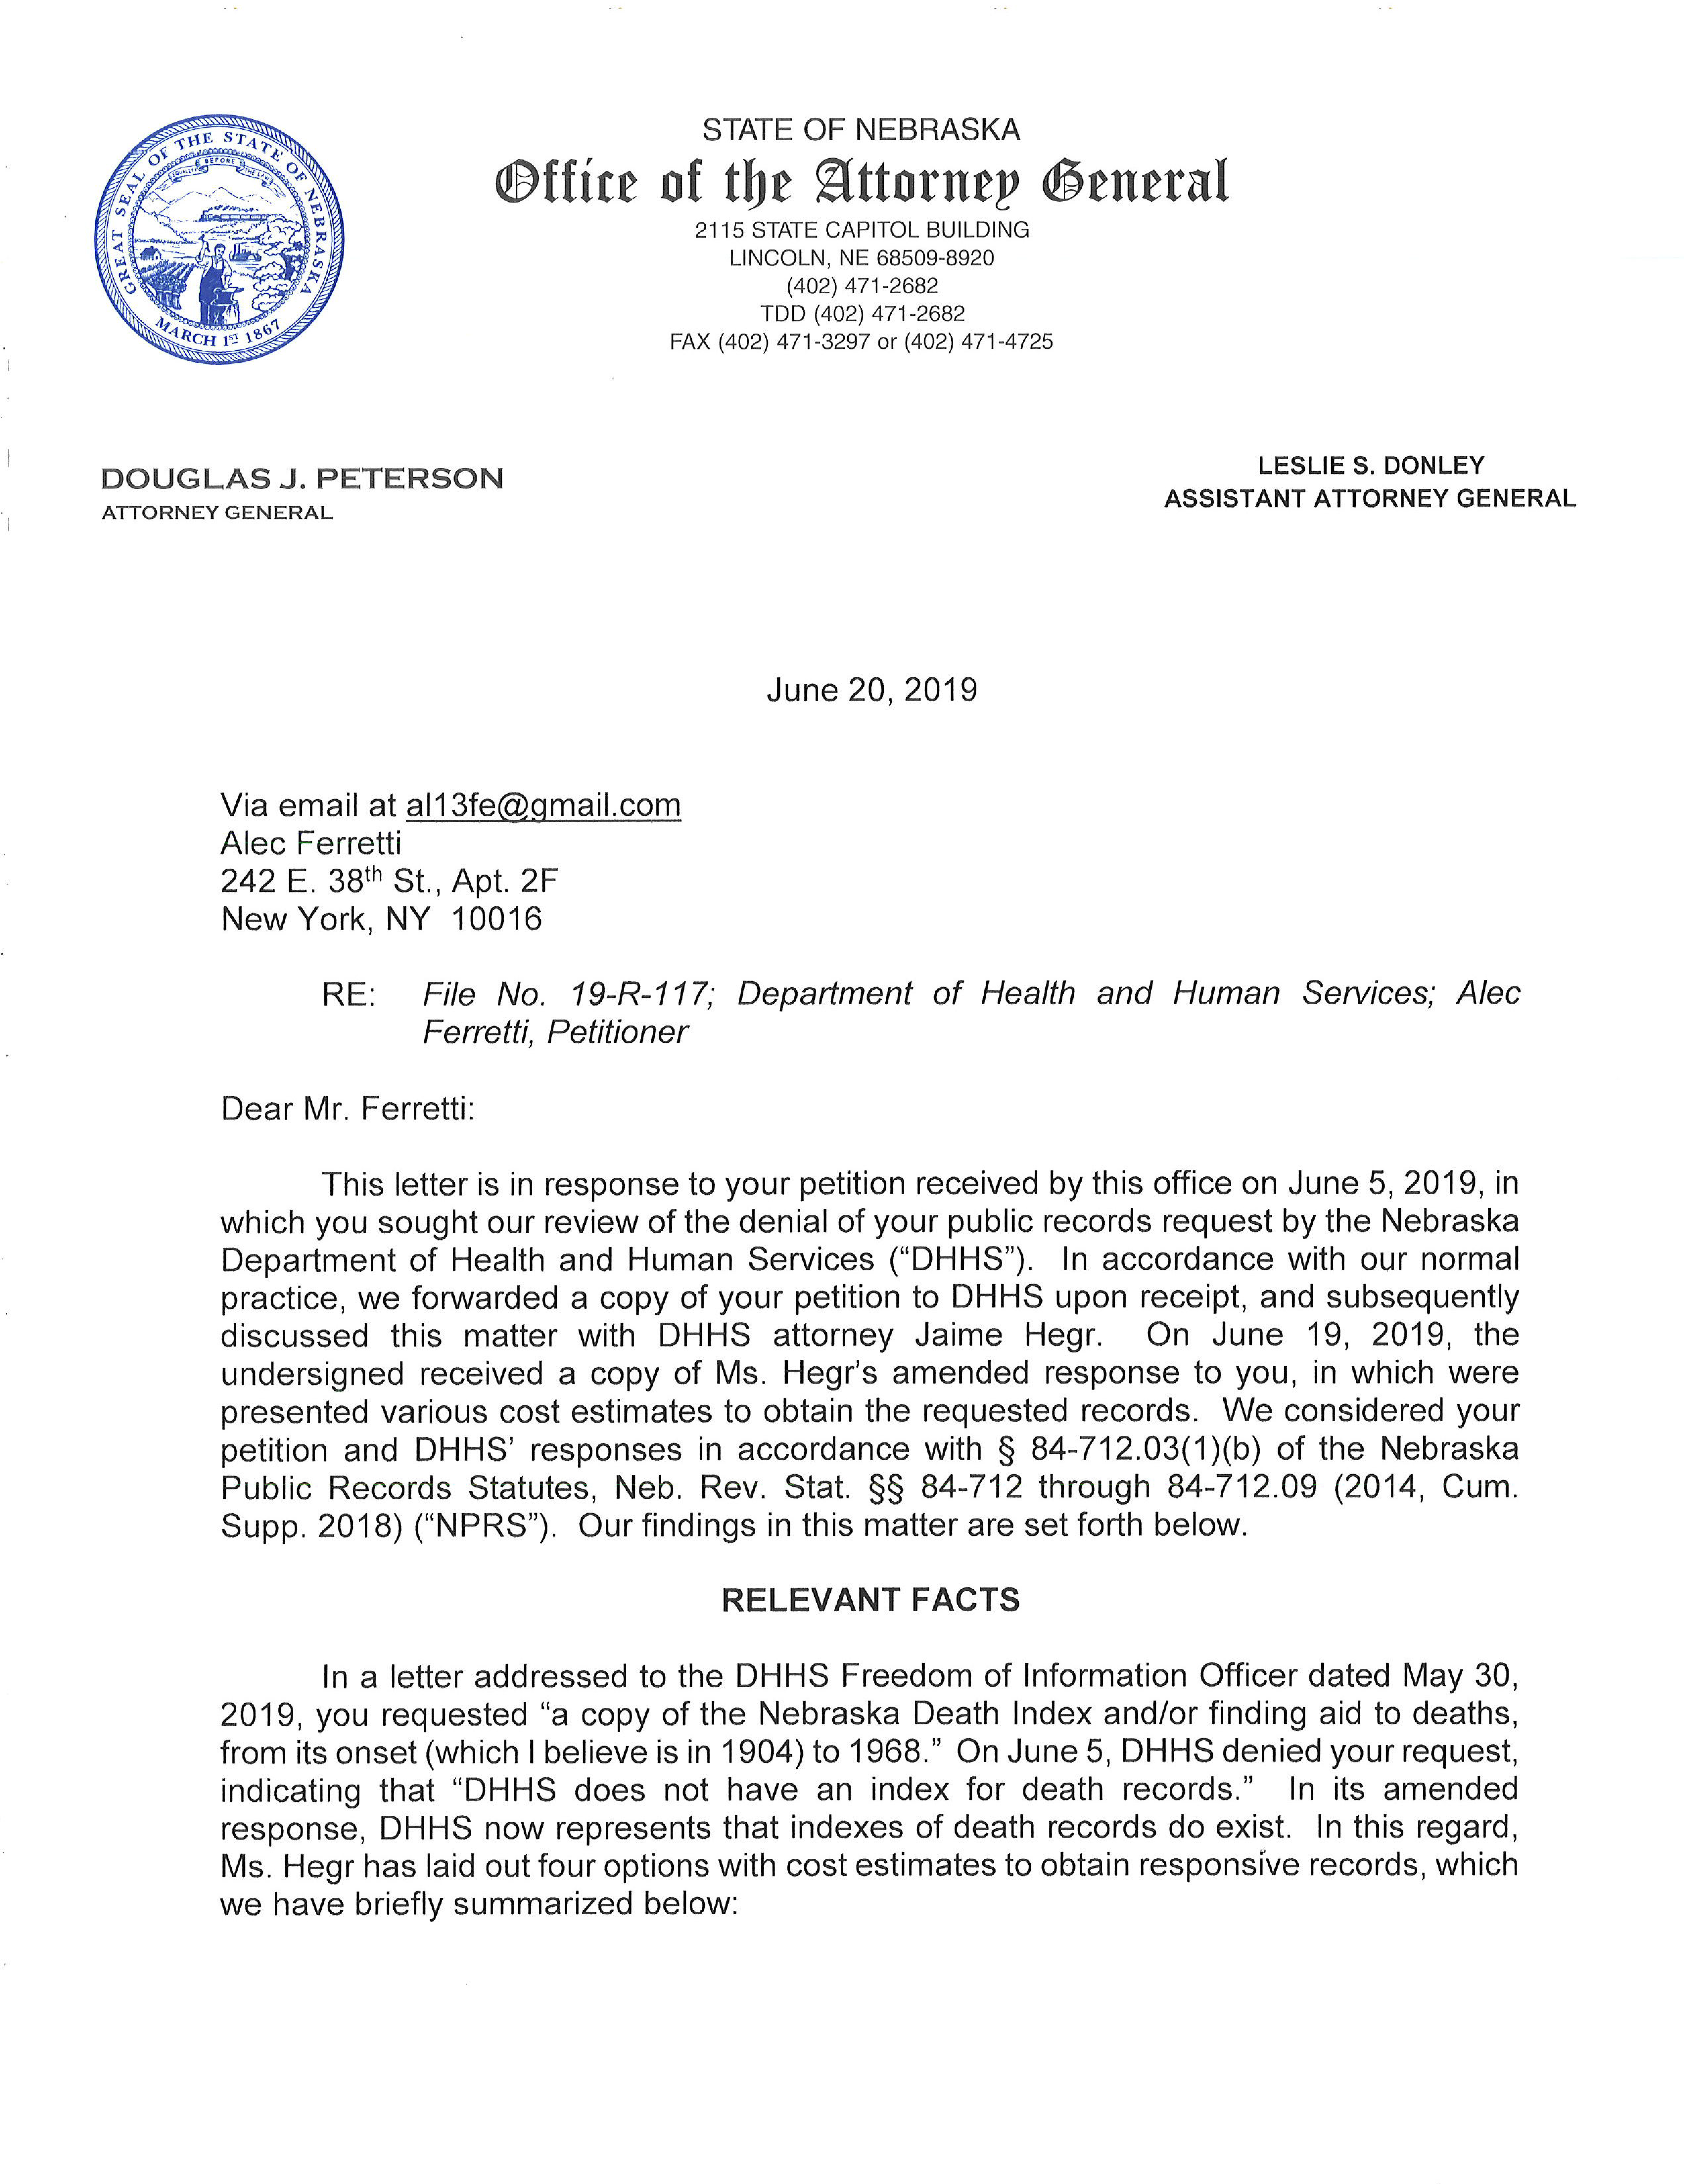 Approval of Appeal from the Nebraska Attorney General's Office (June 20, 2019)